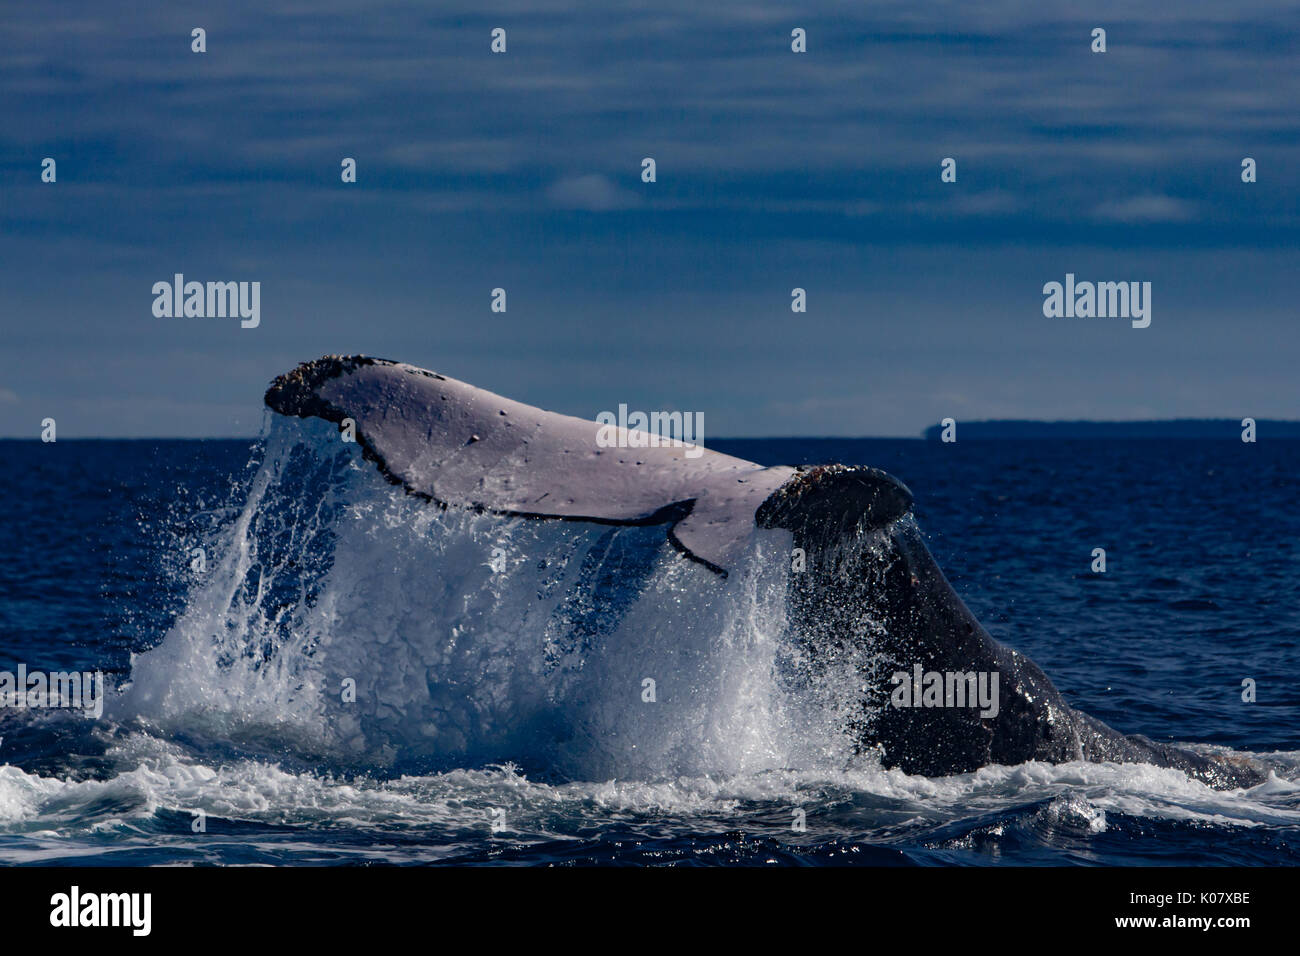 A competitive group or heat run of humpback whales in the Haapai group of Tonga - Stock Image